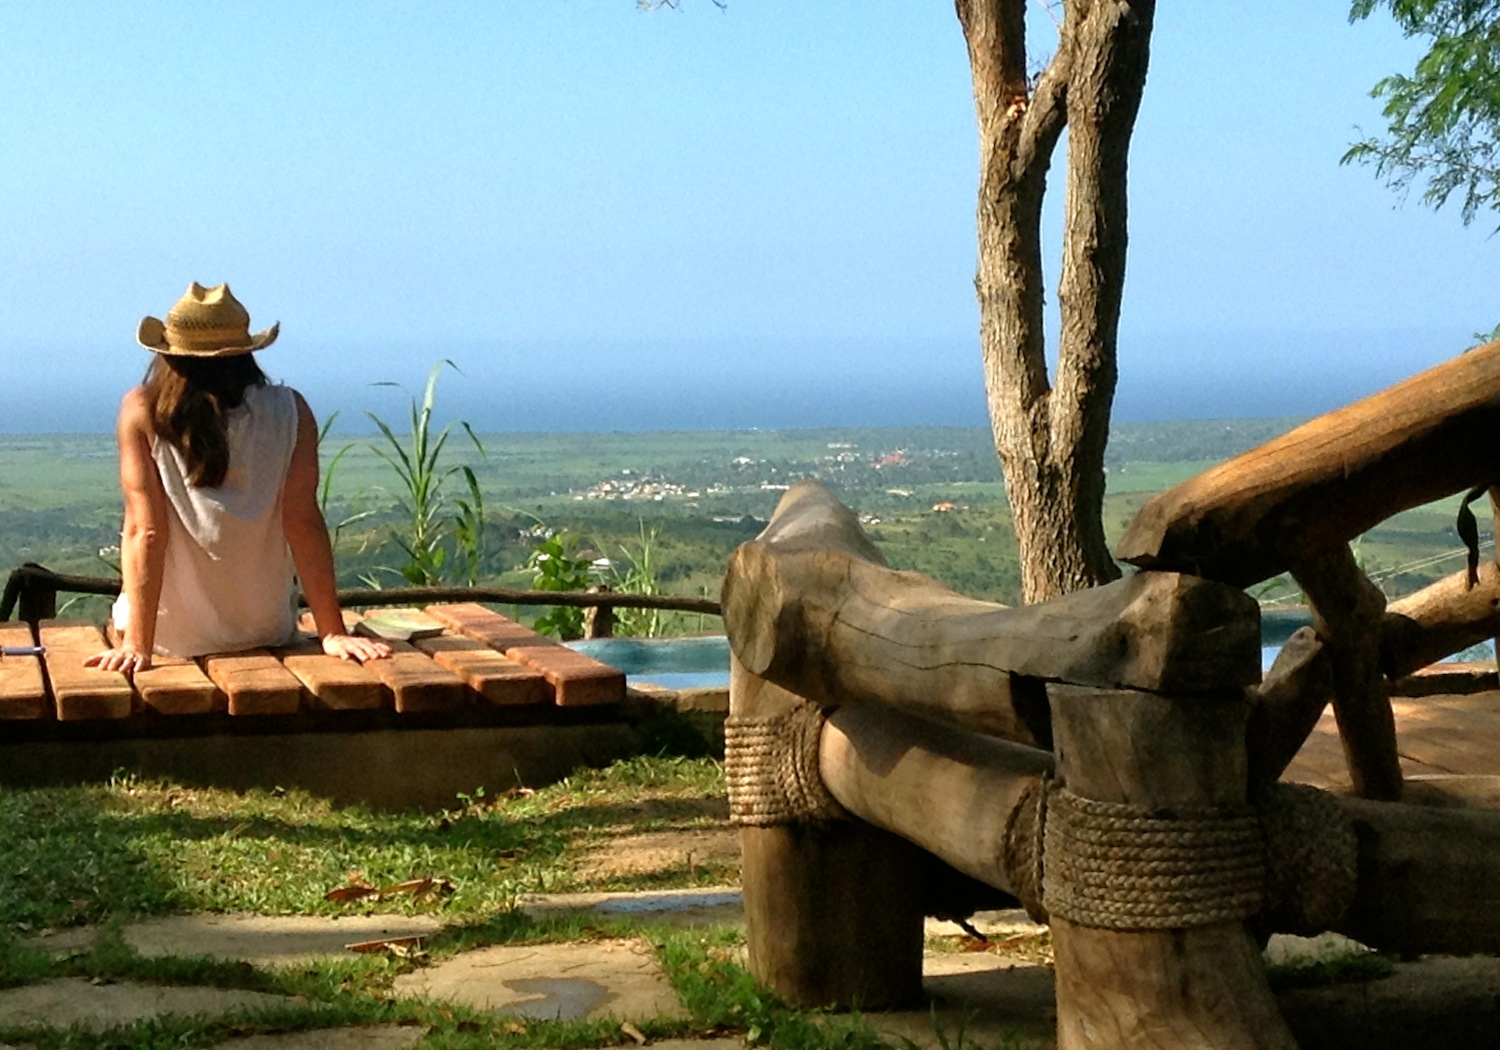 This is a place to enjoy an authentic Dominican countryside experience